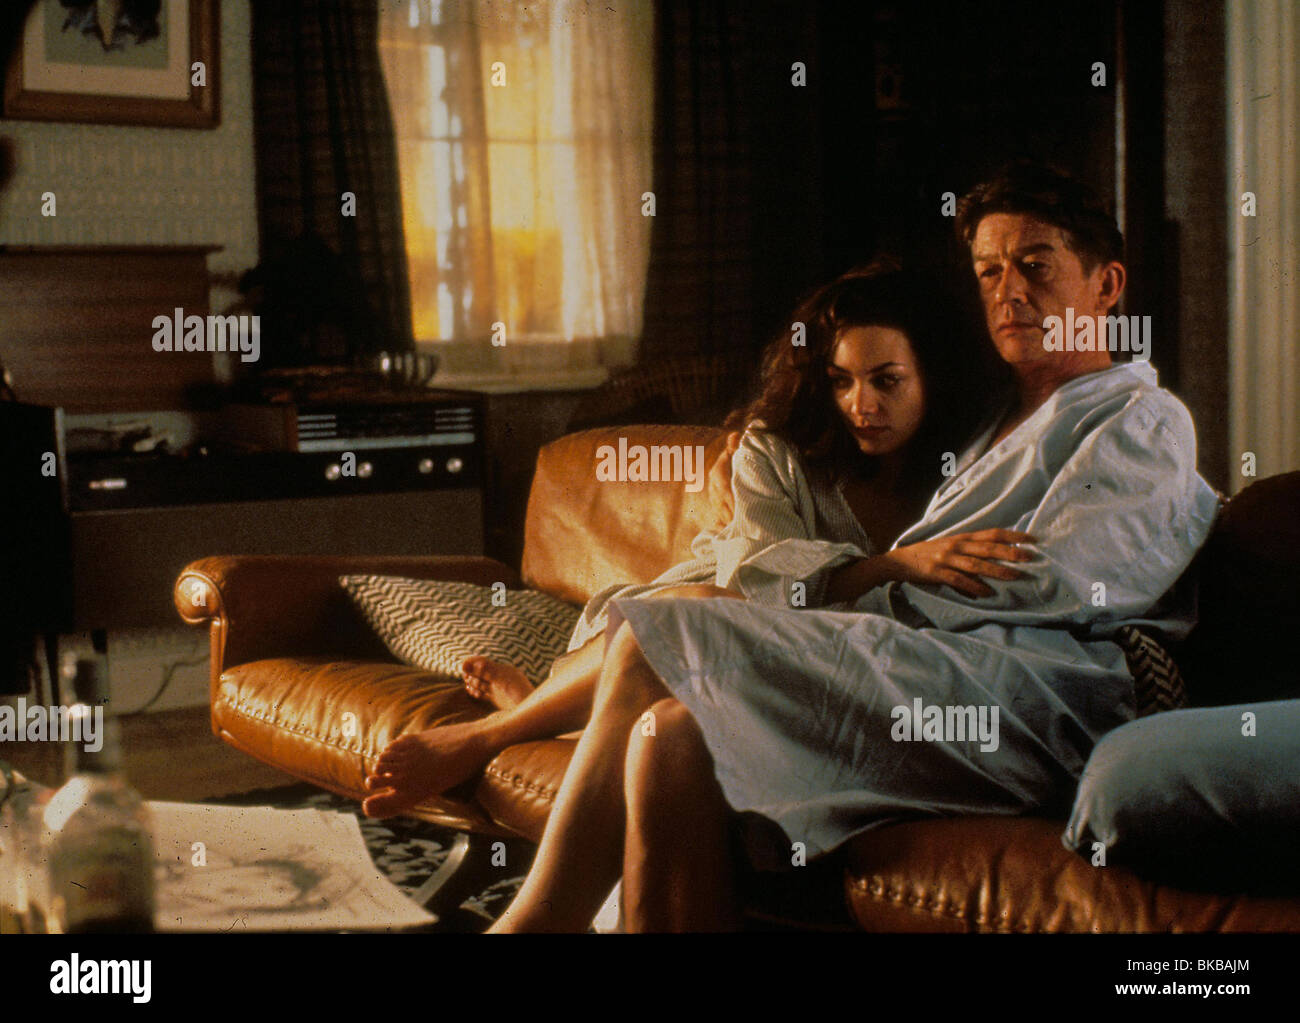 Joanne whalley kilmer pictures Cached